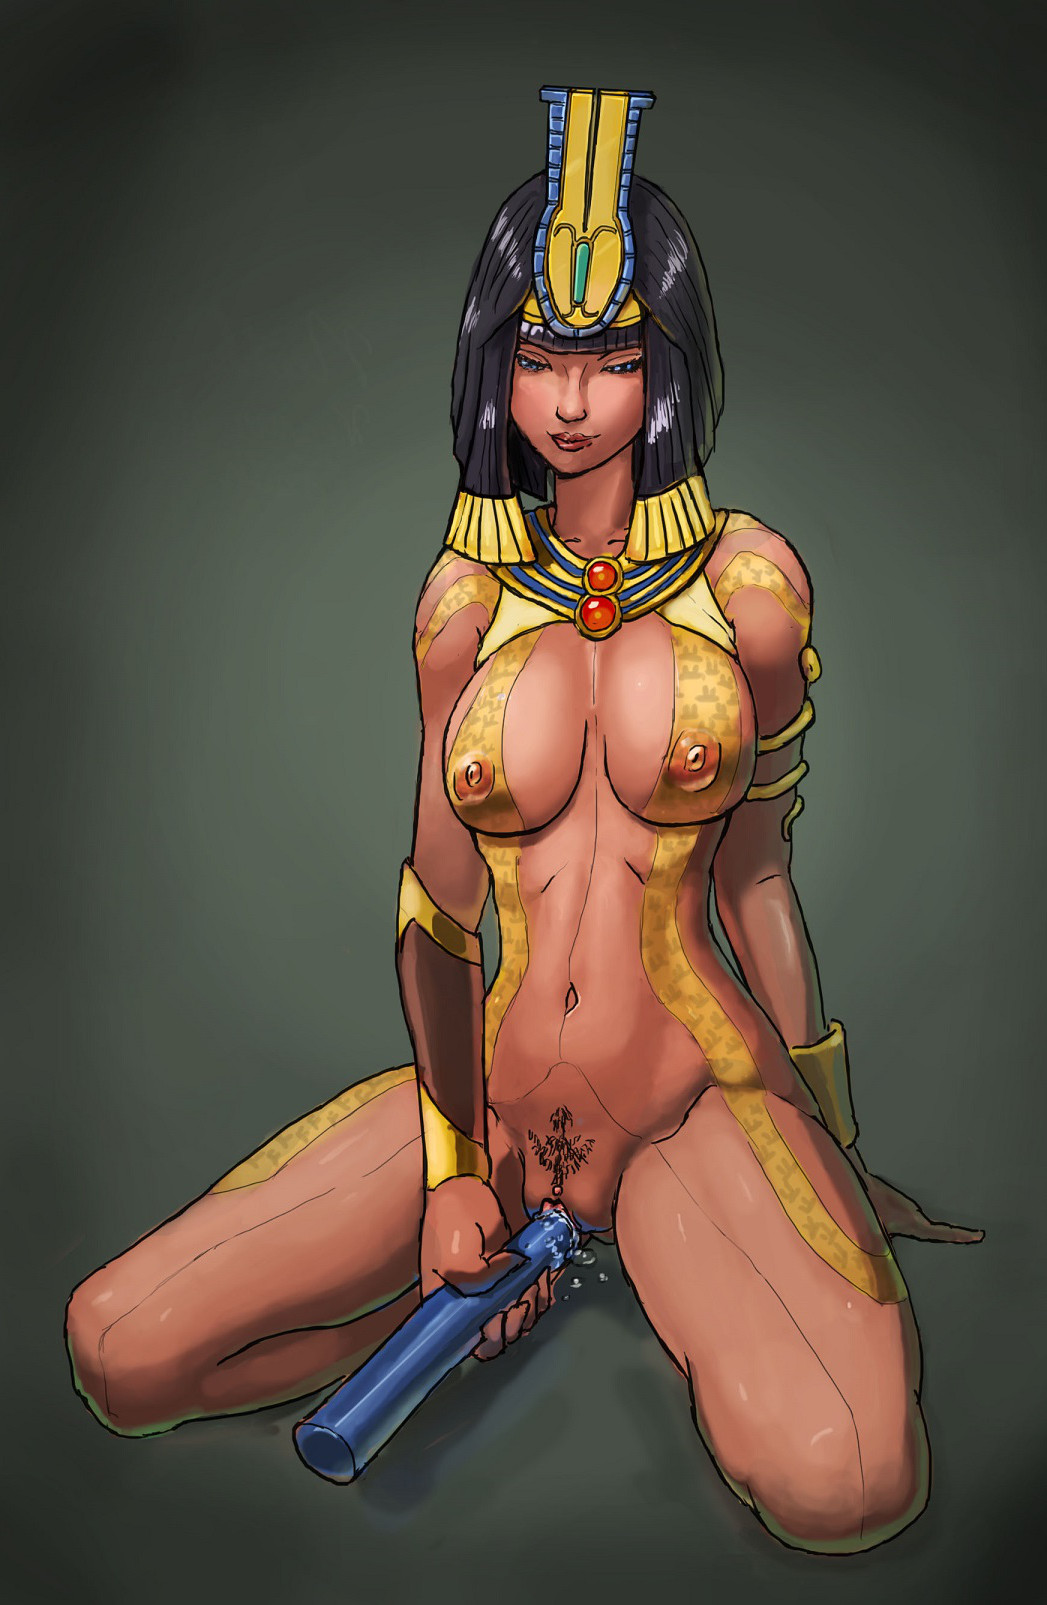 Naked smite girls pic nackt streaming